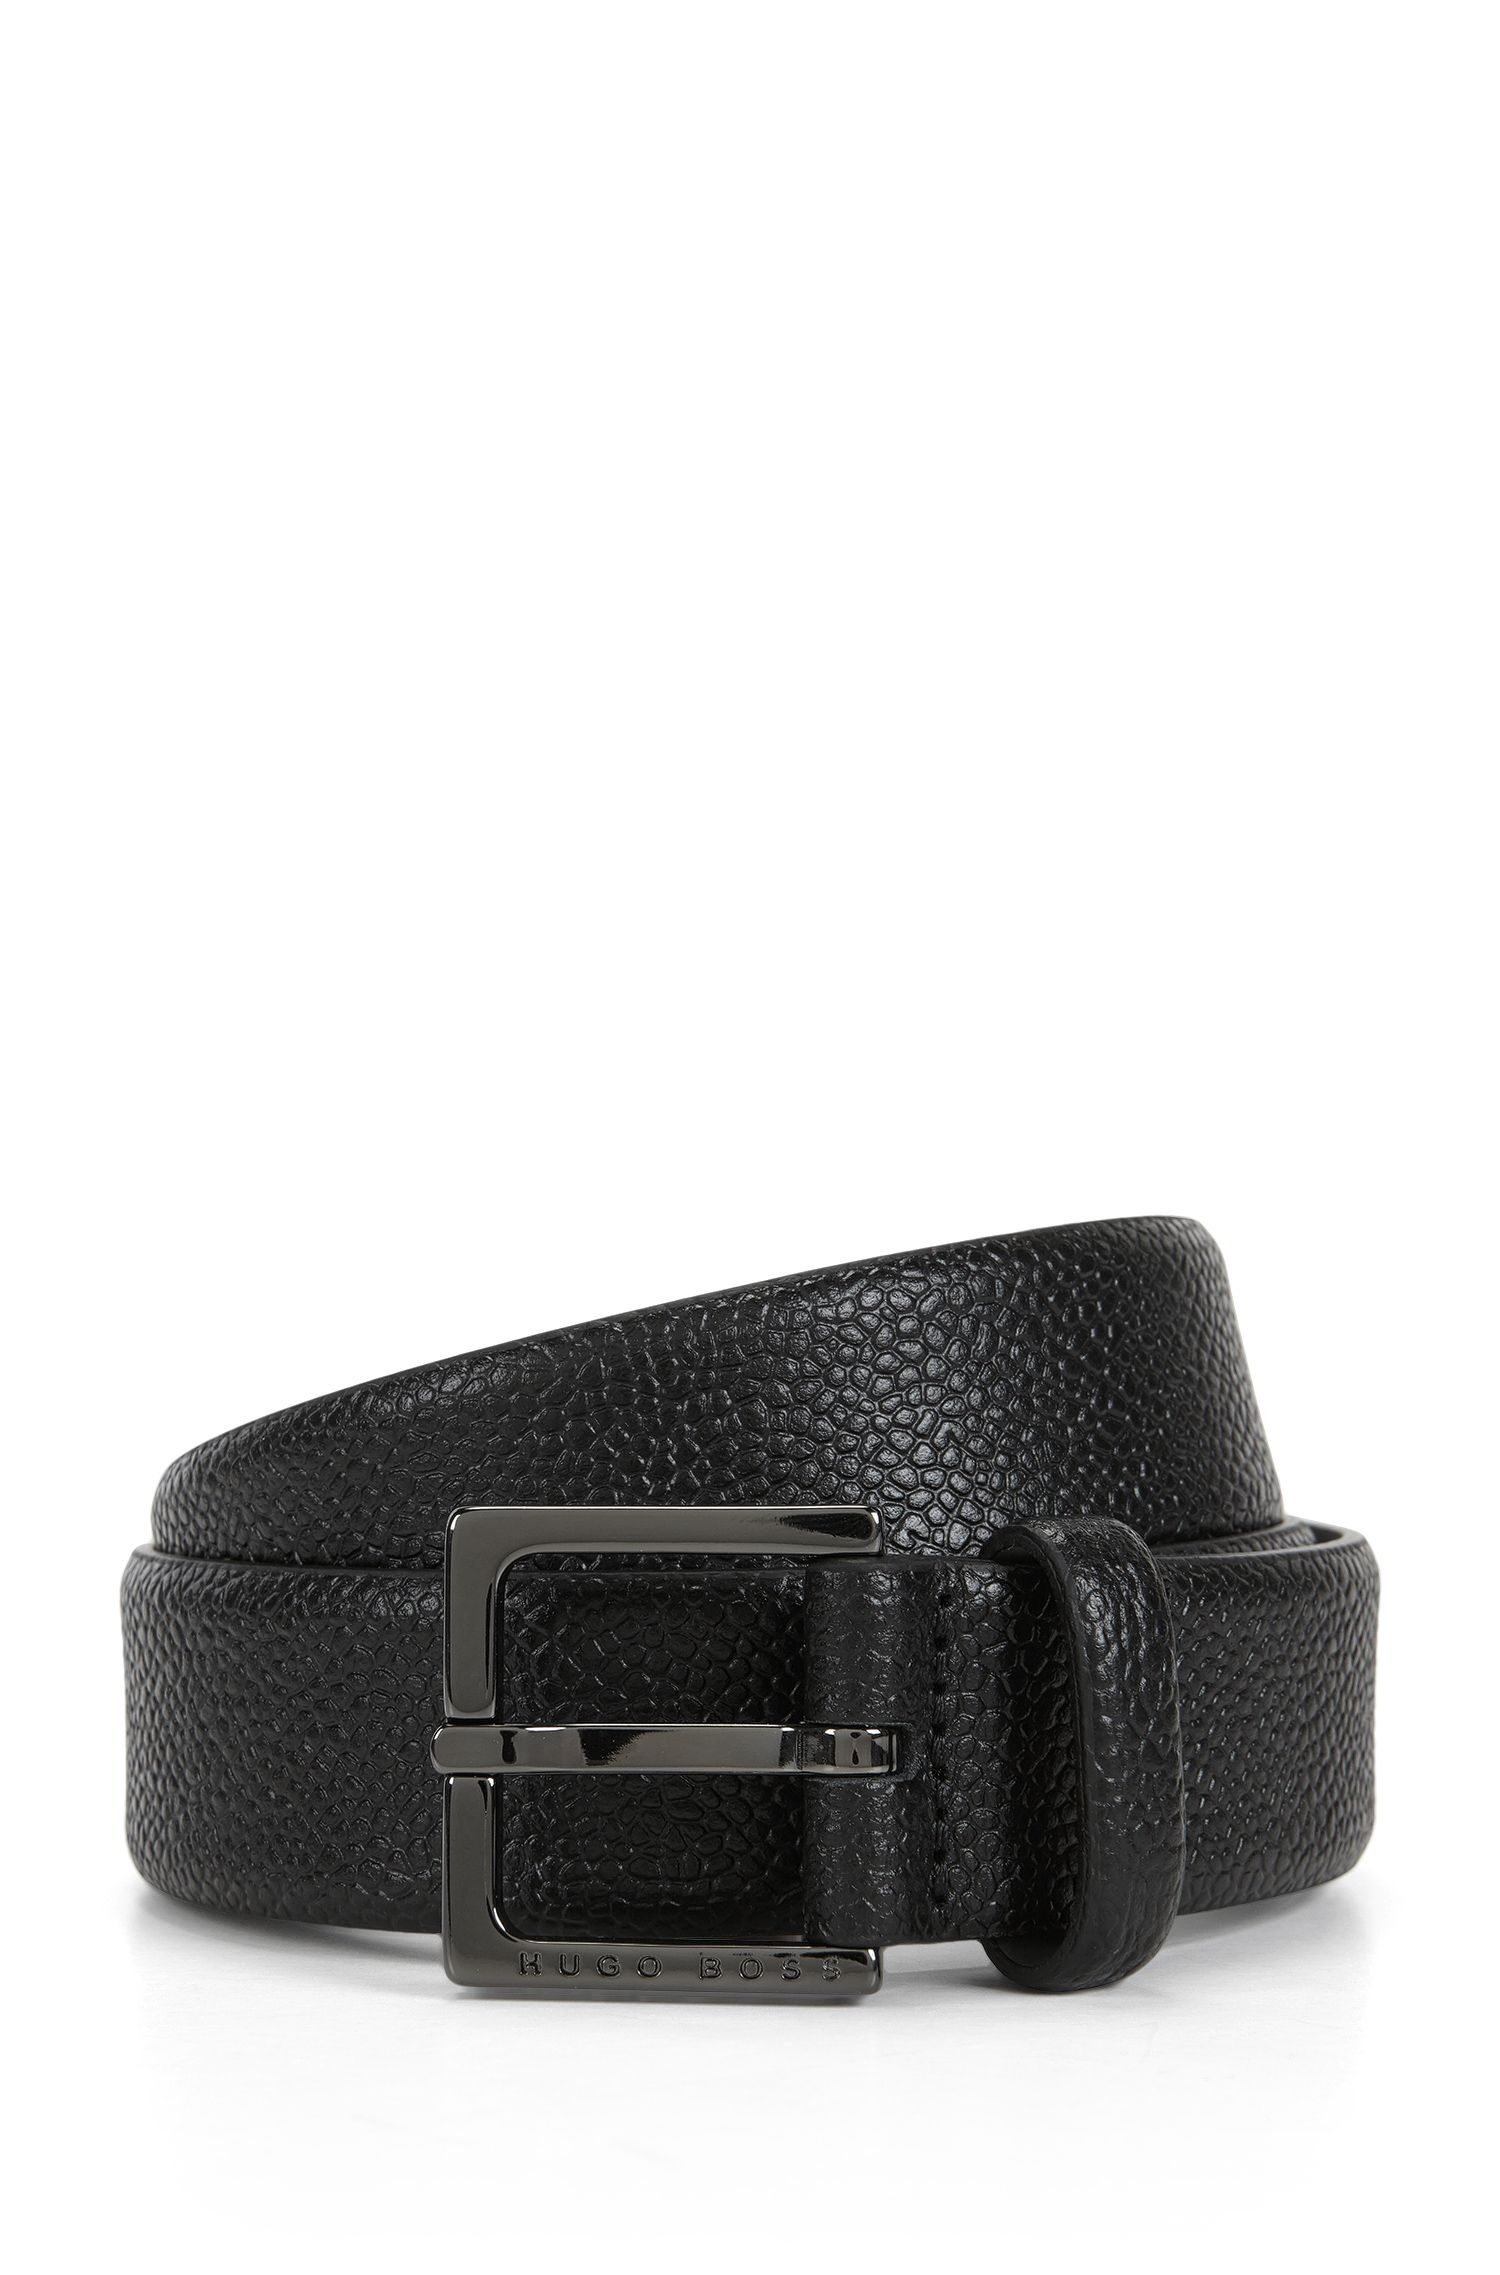 Chino belt in grain-embossed leather